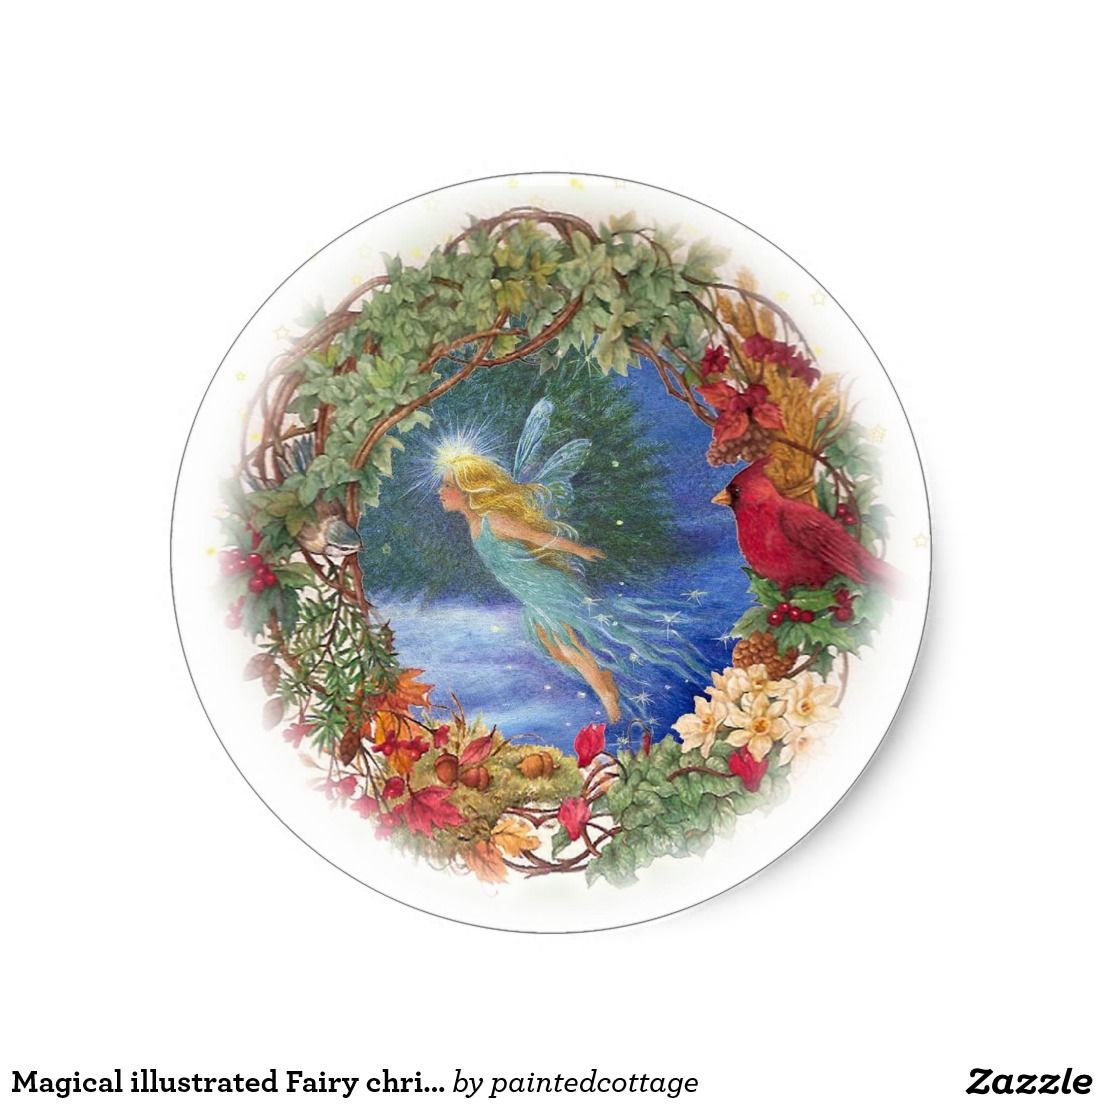 christmas sticker  with illustration of magical fairy, winter nocturne, fairy is border by xmas wreath with cardinal & winter greens, original fantasy painting  by judithchengart